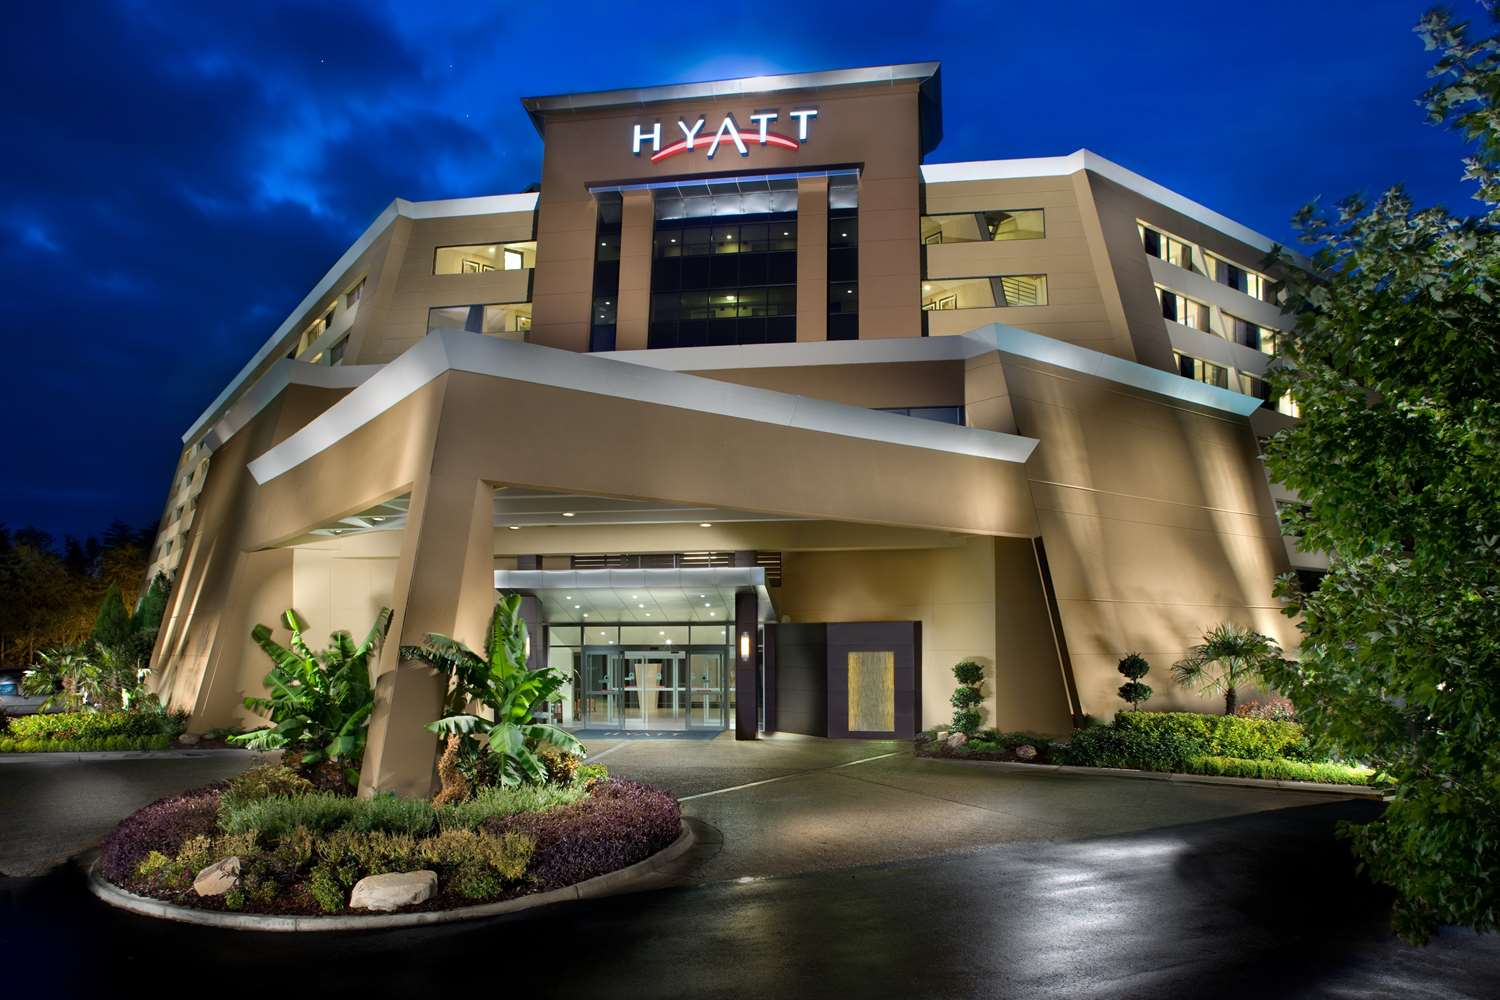 Hyatt Regency Suites Marietta